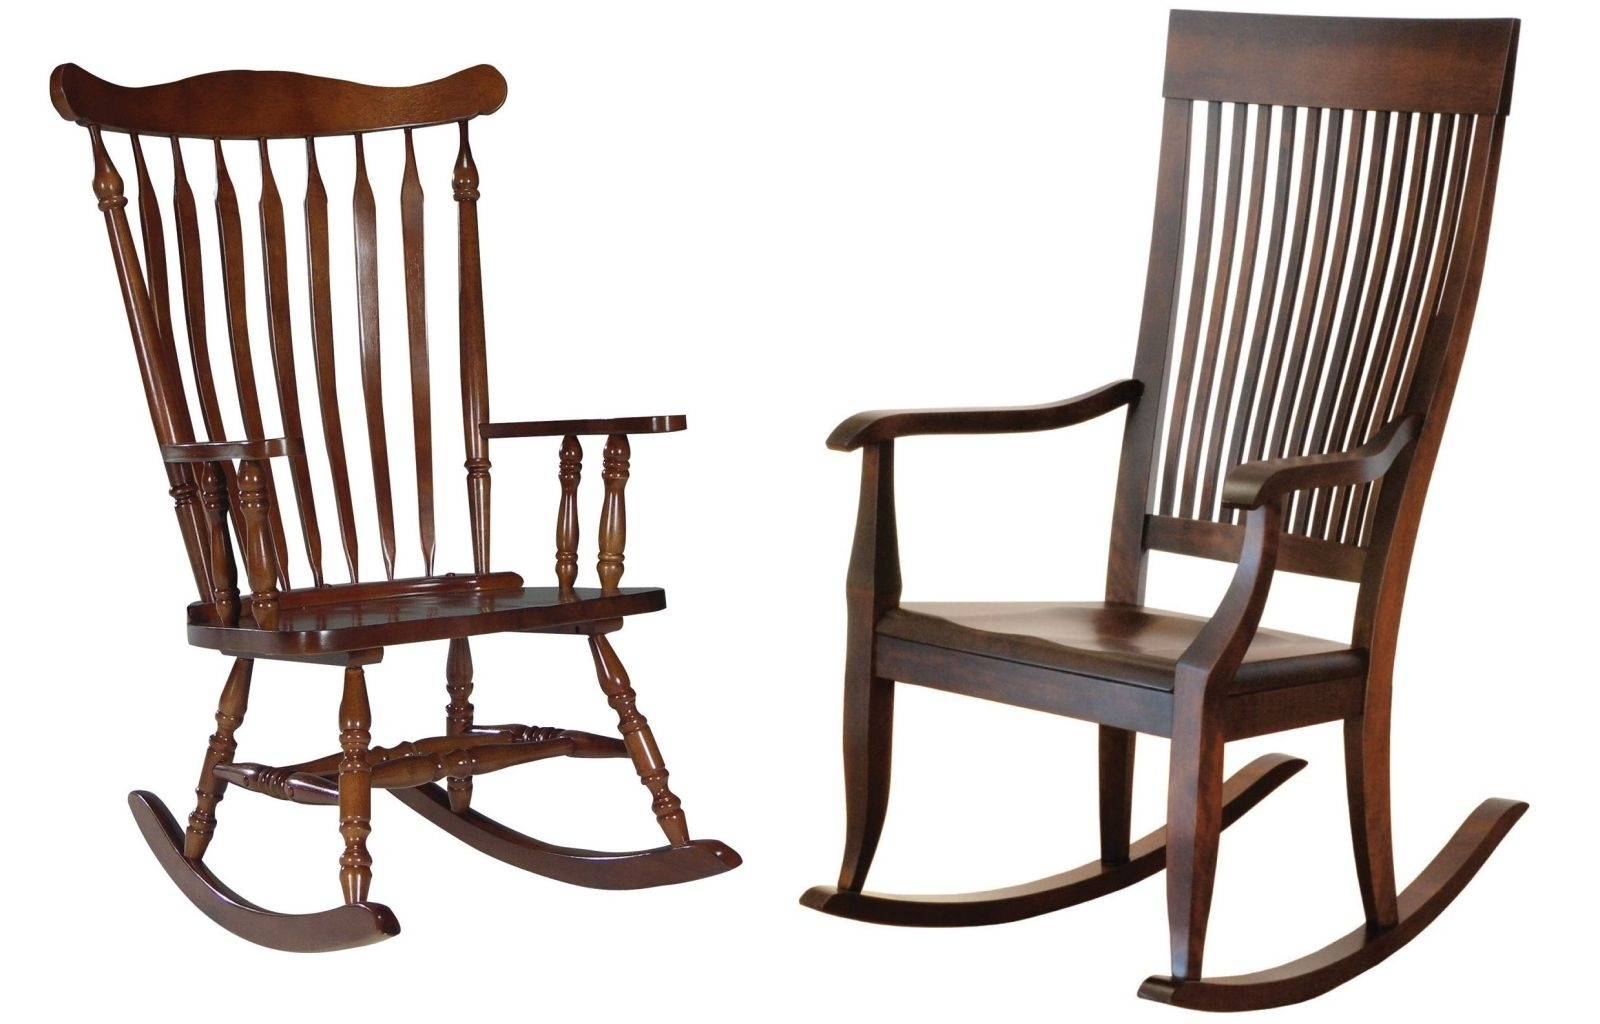 Well Known Old Fashioned Rocking Chairs Throughout Rocking Chair At Modern Interior (View 12 of 15)